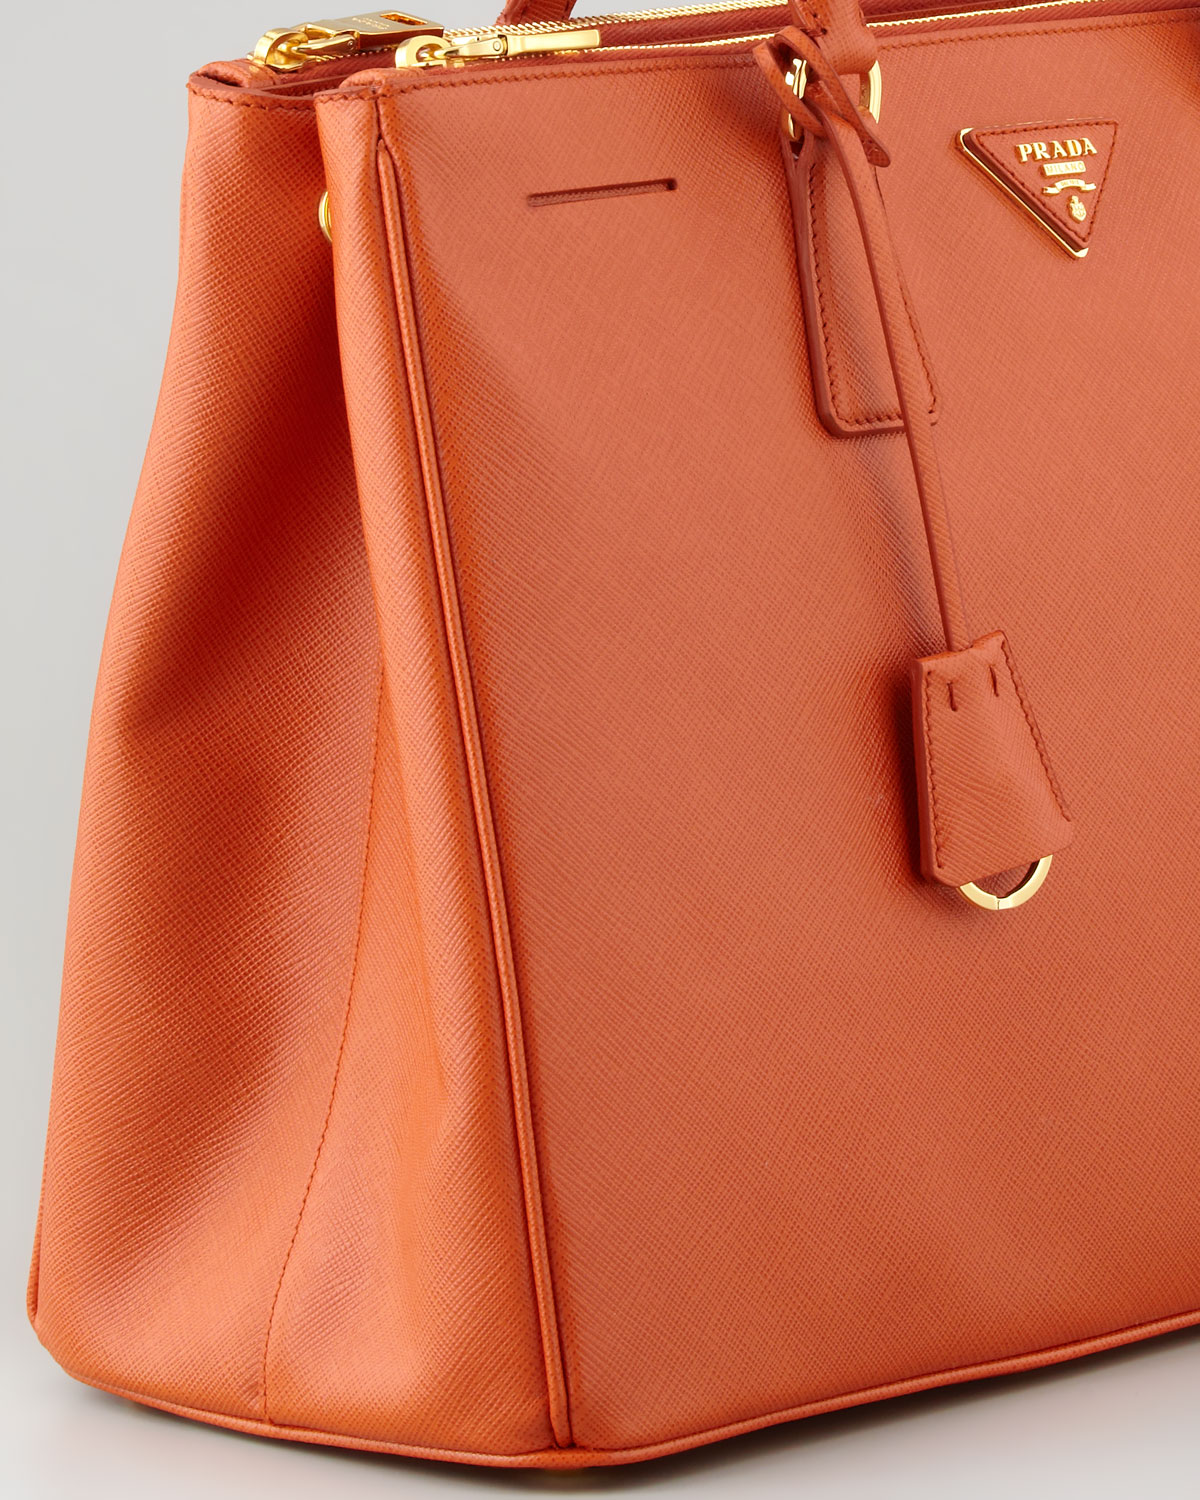 90f1093f1963b8 ... new zealand lyst prada saffiano lux medium executive tote bag in orange  baf67 8acef